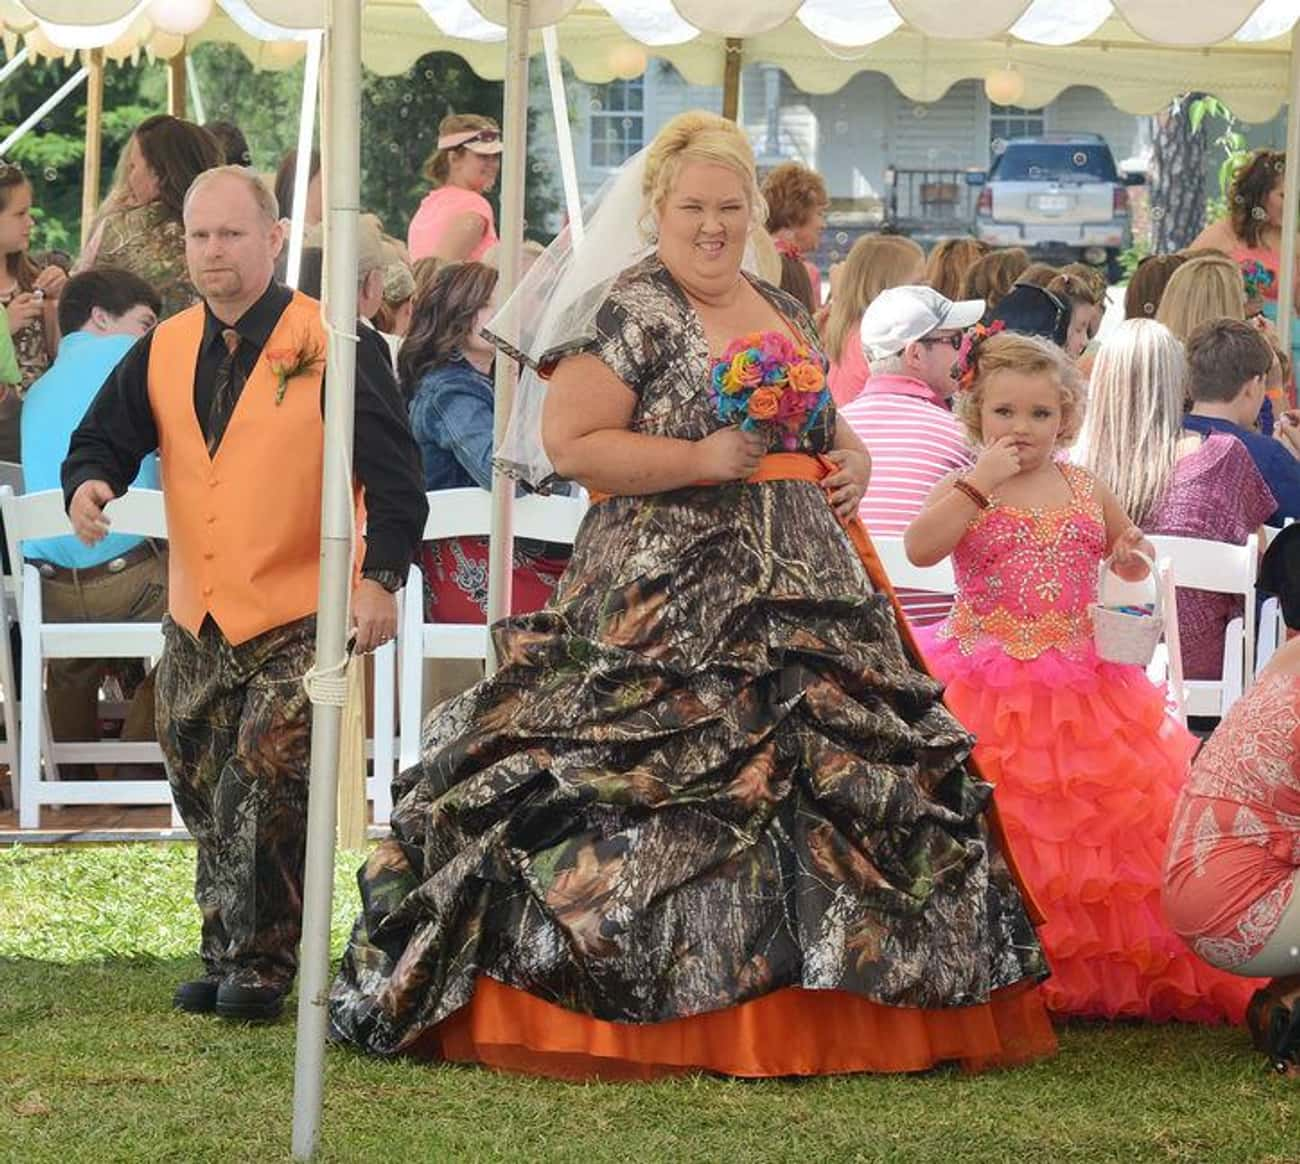 """June """"Mama June"""" Sha is listed (or ranked) 1 on the list 24 of the Wackiest Celebrity Wedding Gowns"""